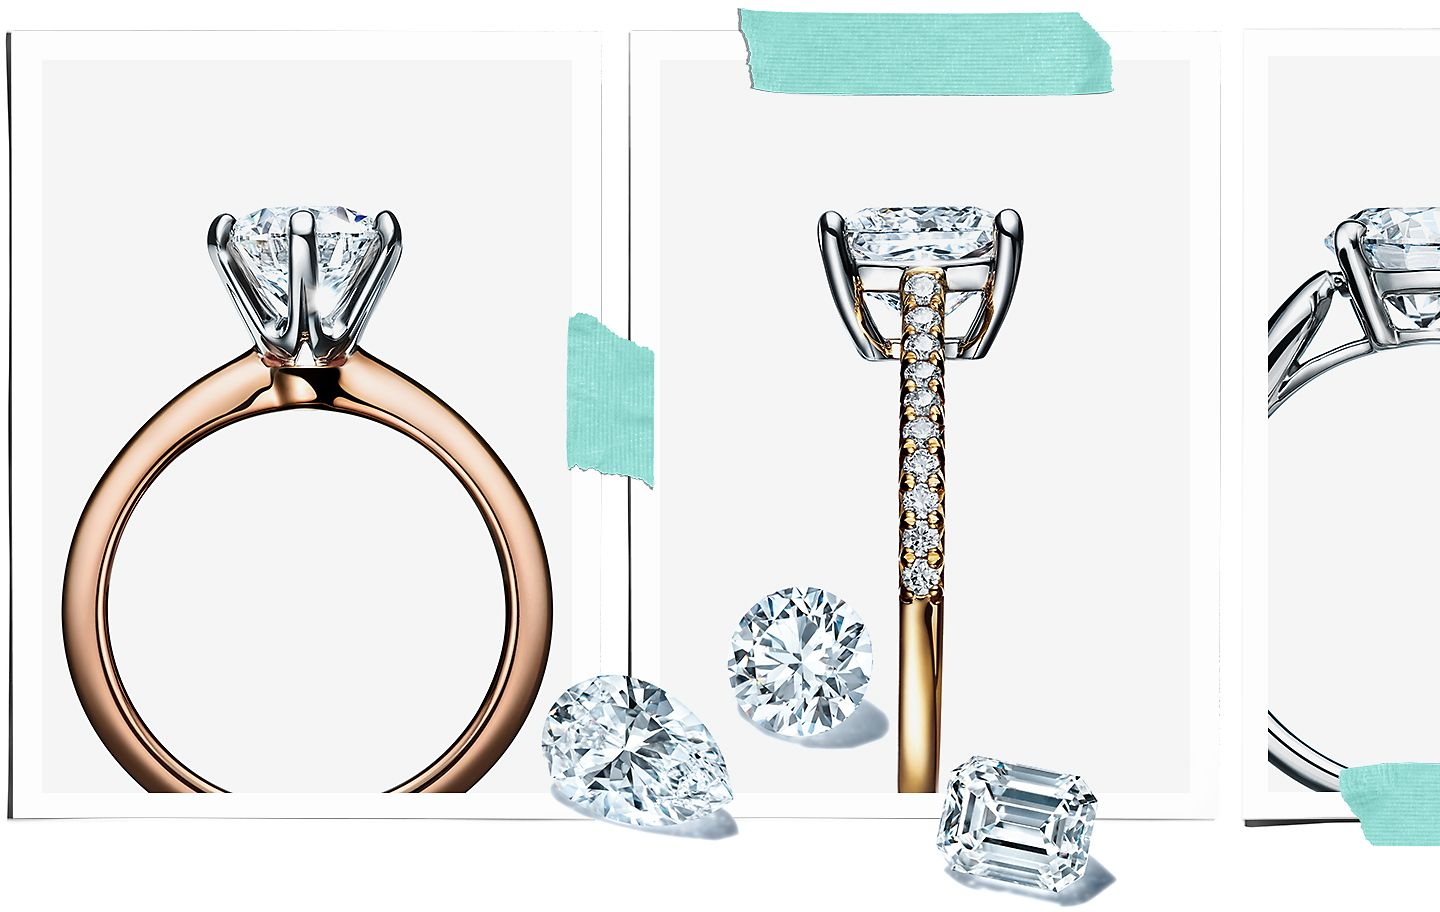 Tiffany & Co. Customize Your Ring with a Diamond Expert